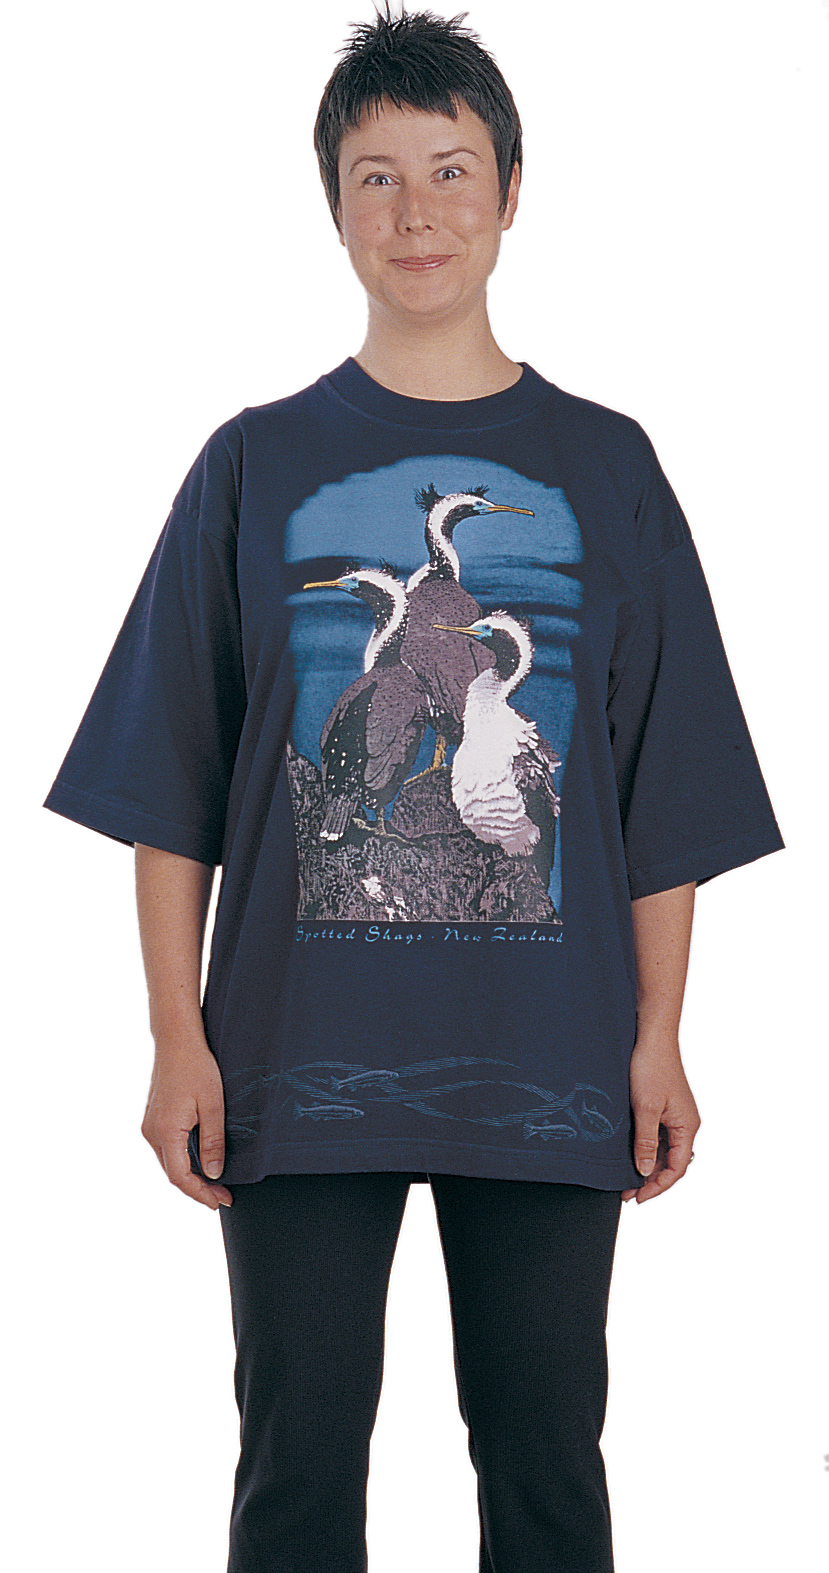 'Spotted Shags - New Zealand' T-shirt, seven colour print on navy blue fabric.